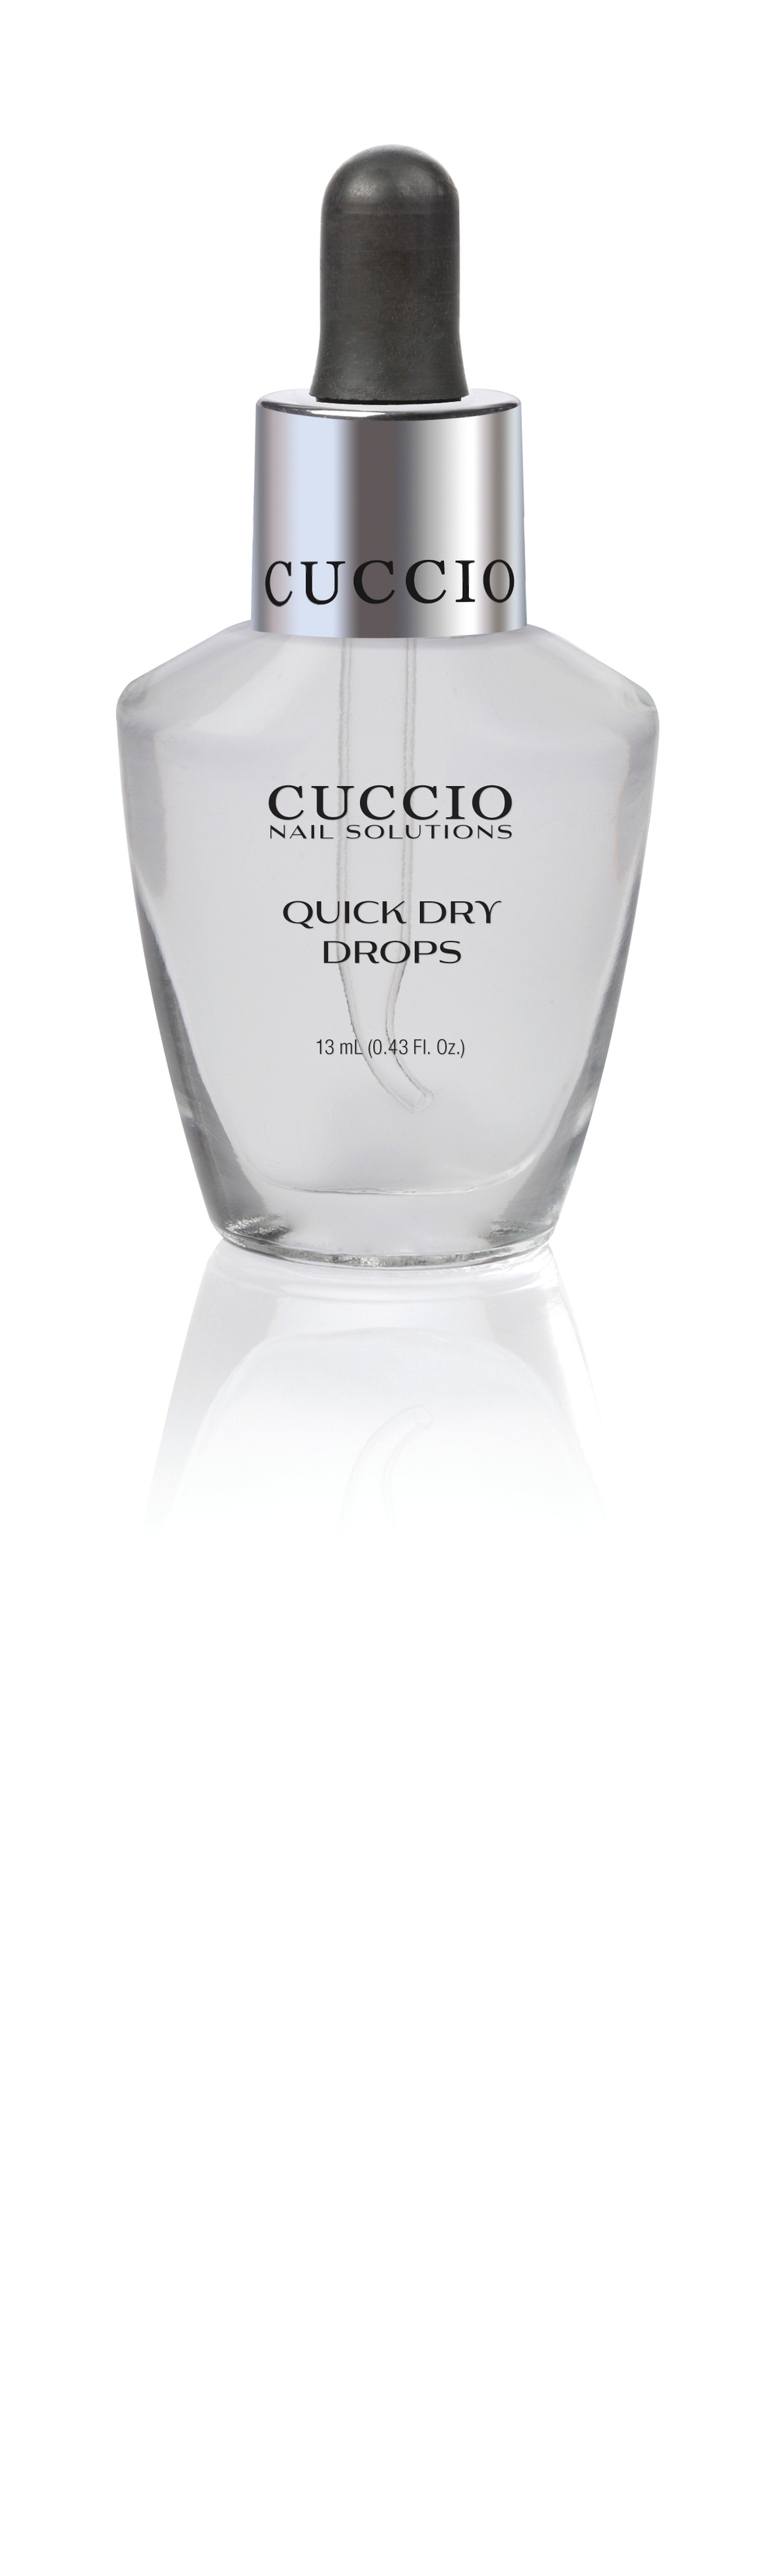 """<p>Speed up the drying process by applying Quick Dry Drops by <a href=""""http://www.cuccio.com"""">Cuccio</a> as the final step before sending clients home. The drops help dry layers of polish quickly while providing moisture and protection. After the final coat of polish, use one drop per nail.</p>"""